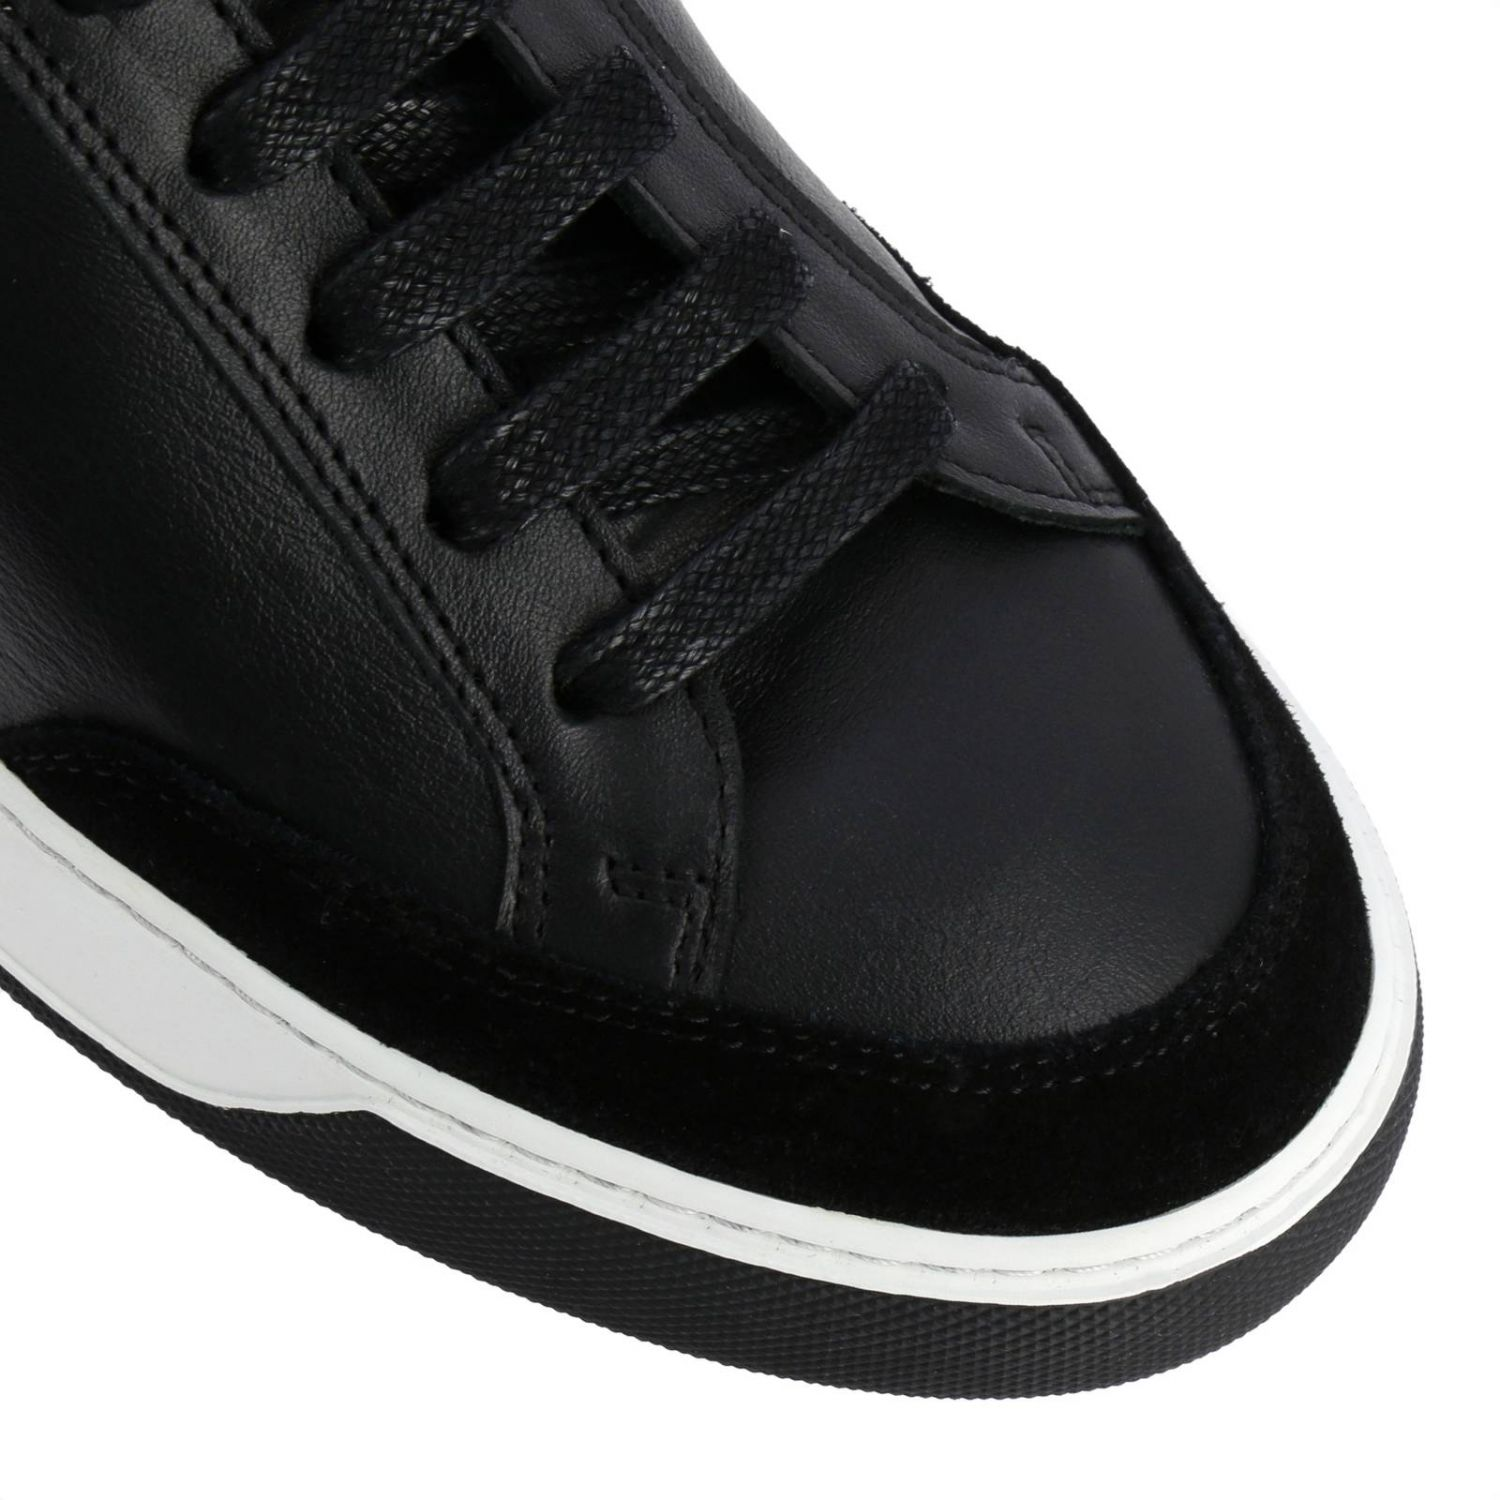 Trainers men National Standard black 3